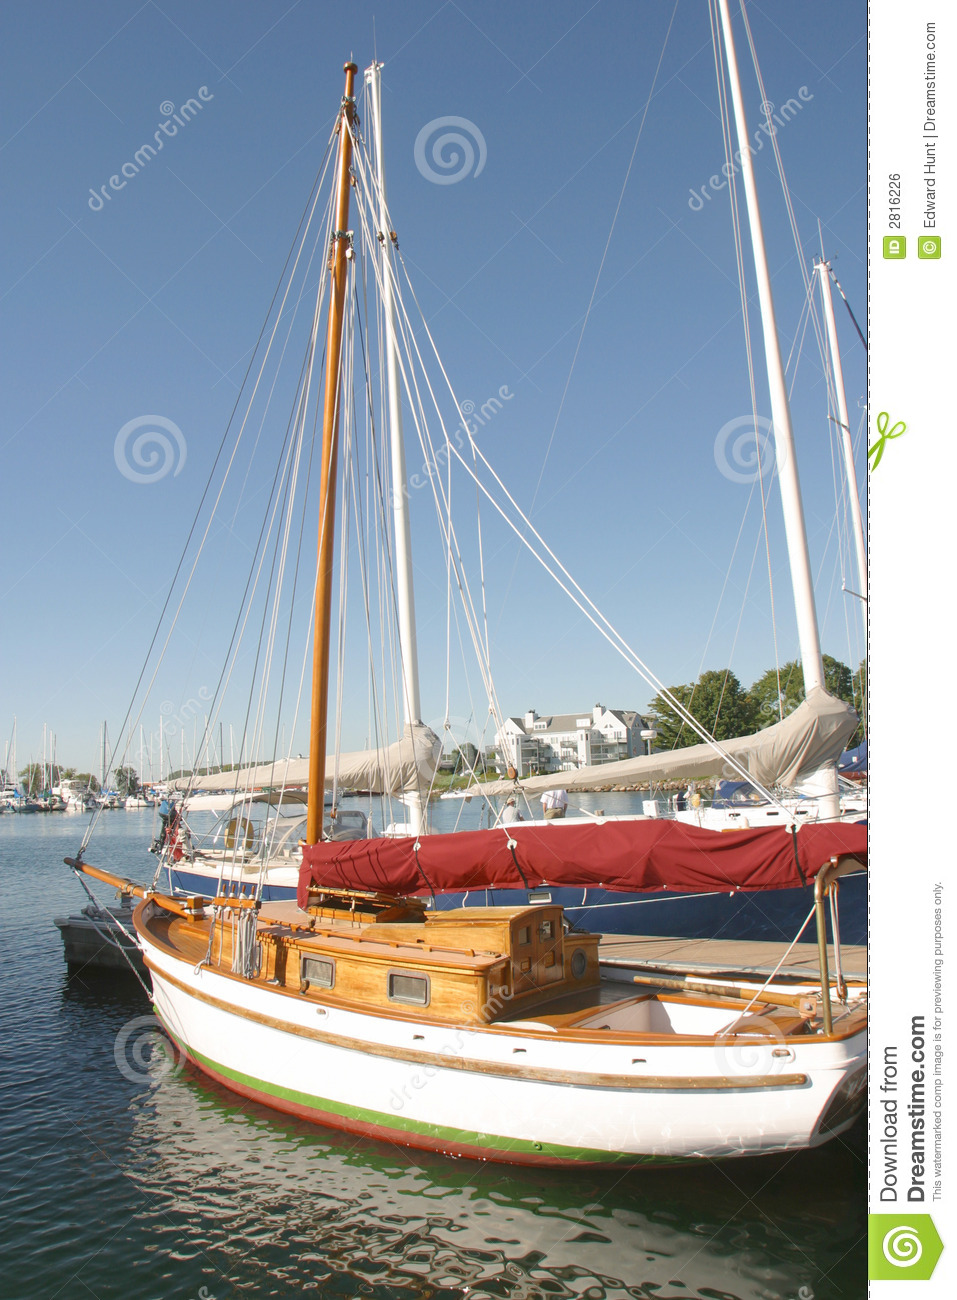 Wooden Sailboat stock photo. Image of sails, water, waves - 2816226